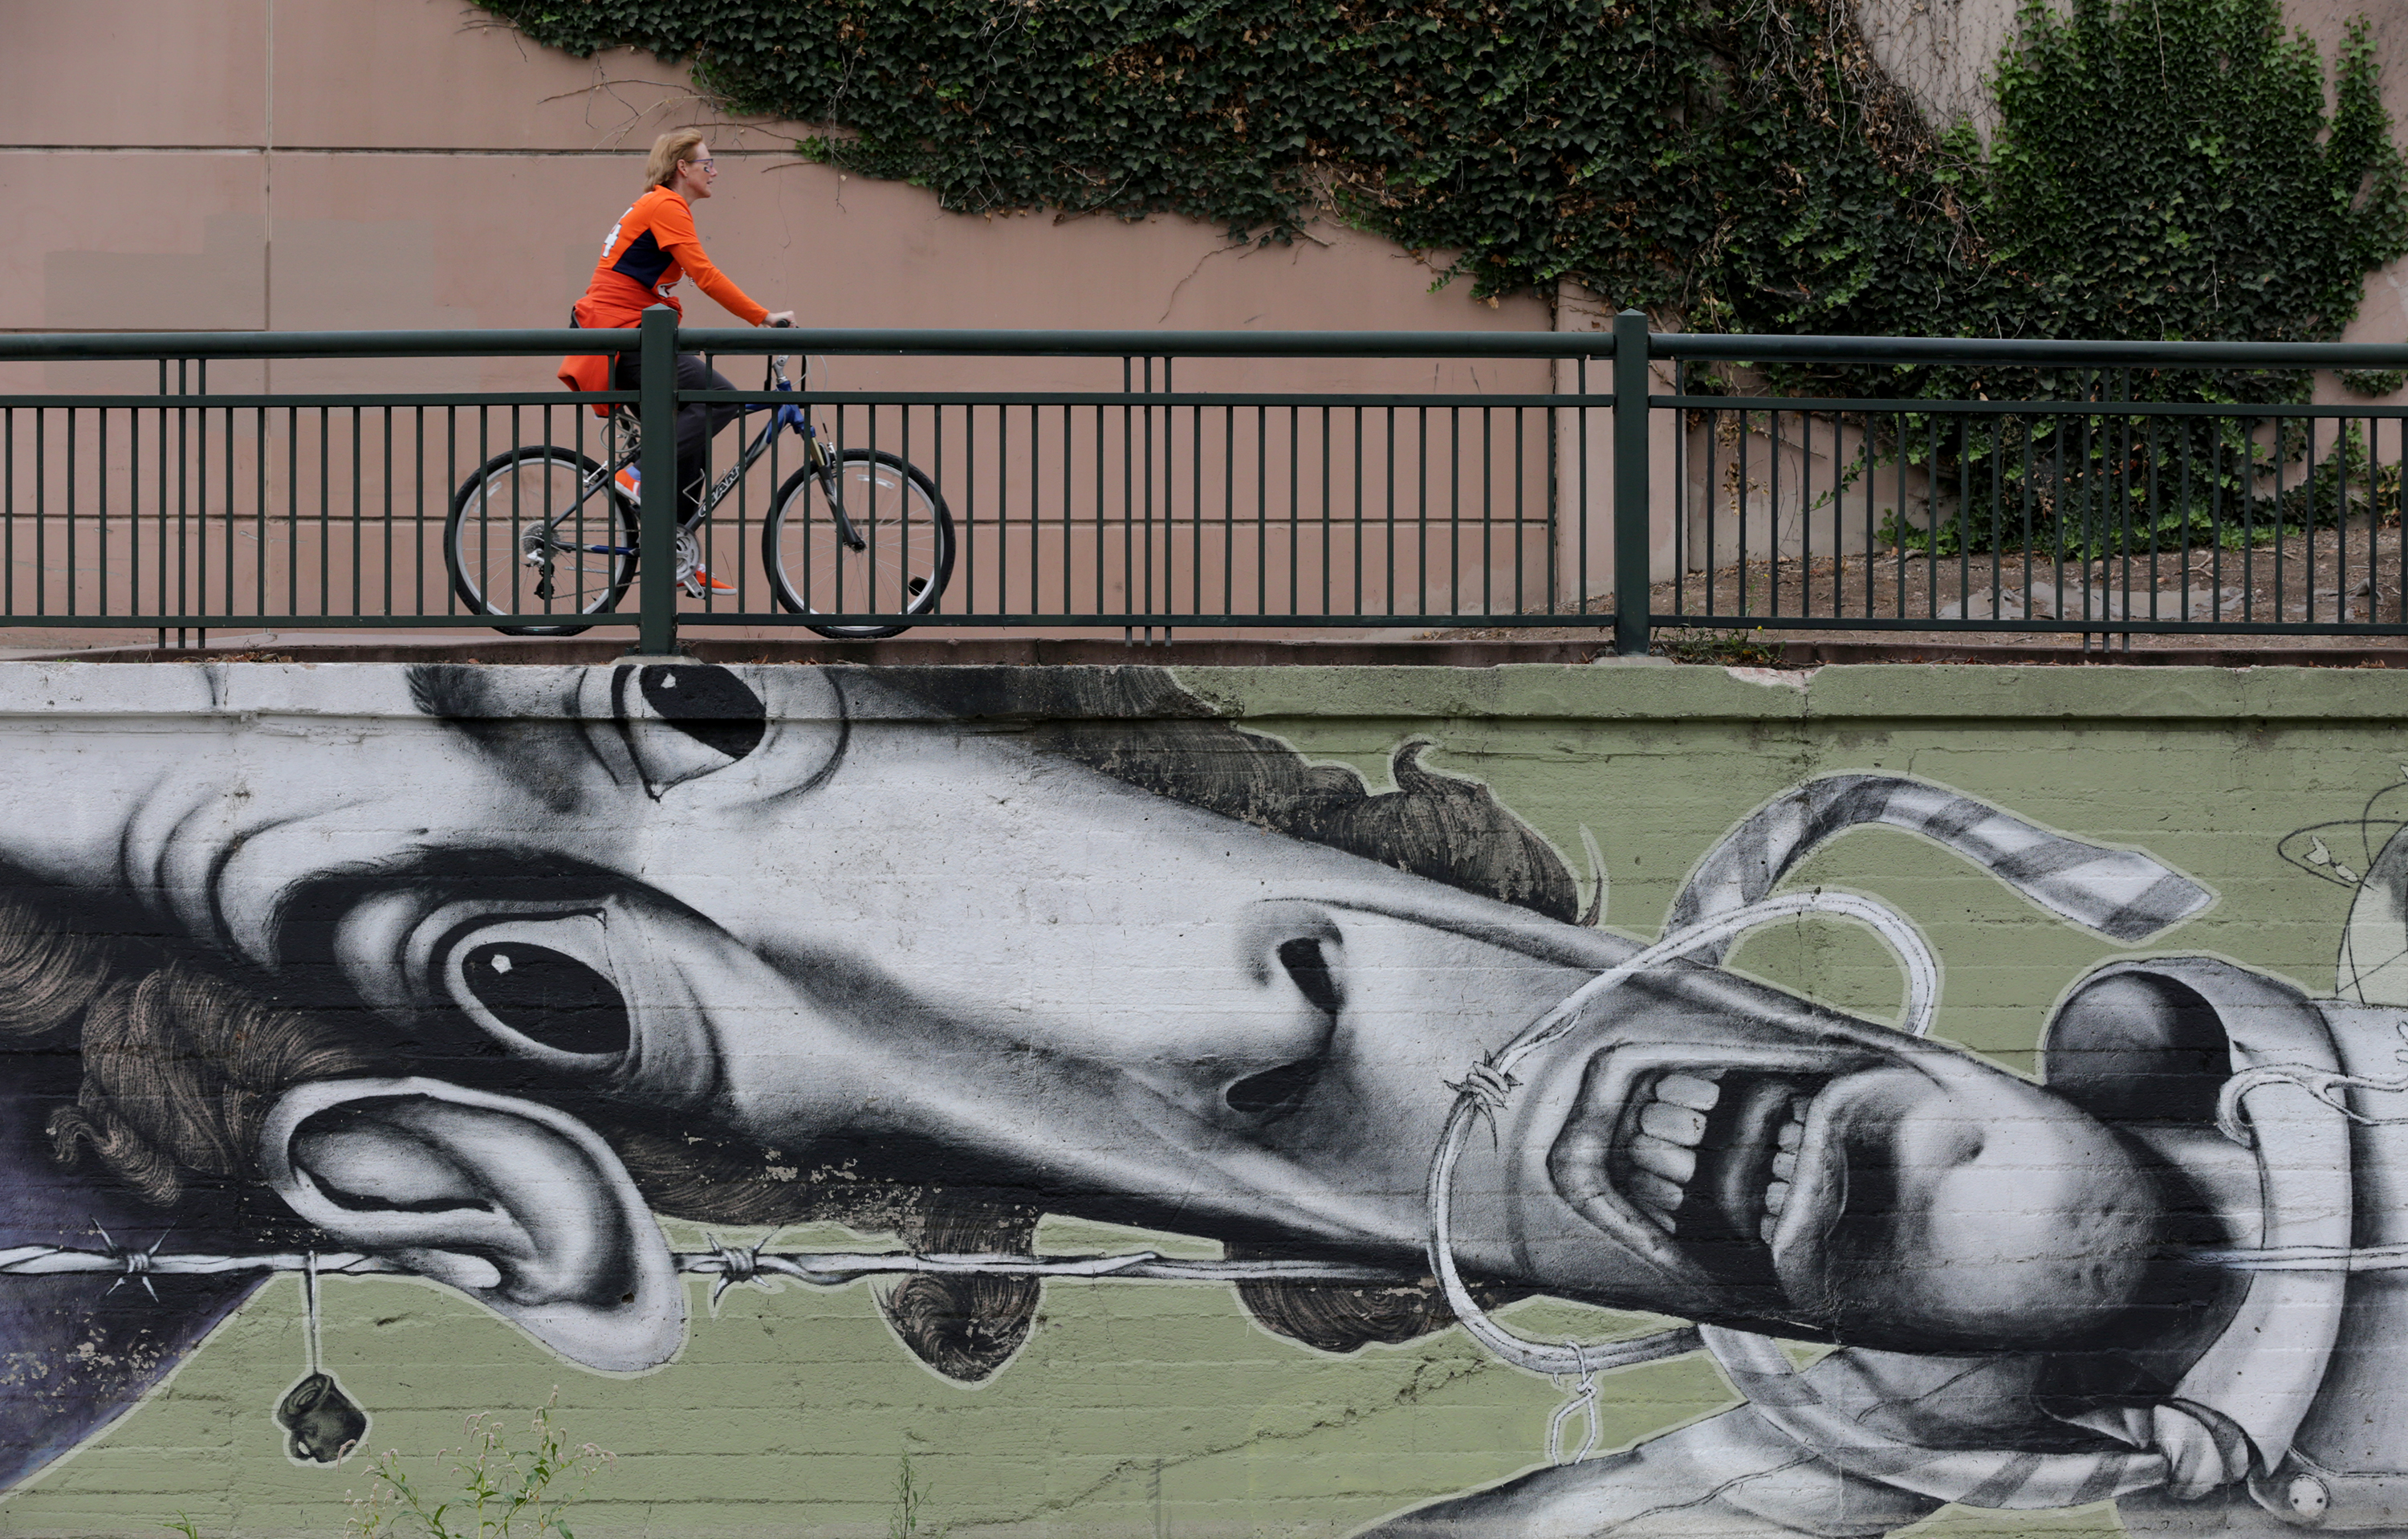 <p>A cyclist rideson the Cherry Creek bike path above a graffiti mural commissioned by the city of Denver near Confluence Park on Sunday, Oct. 4, 2015.</p>